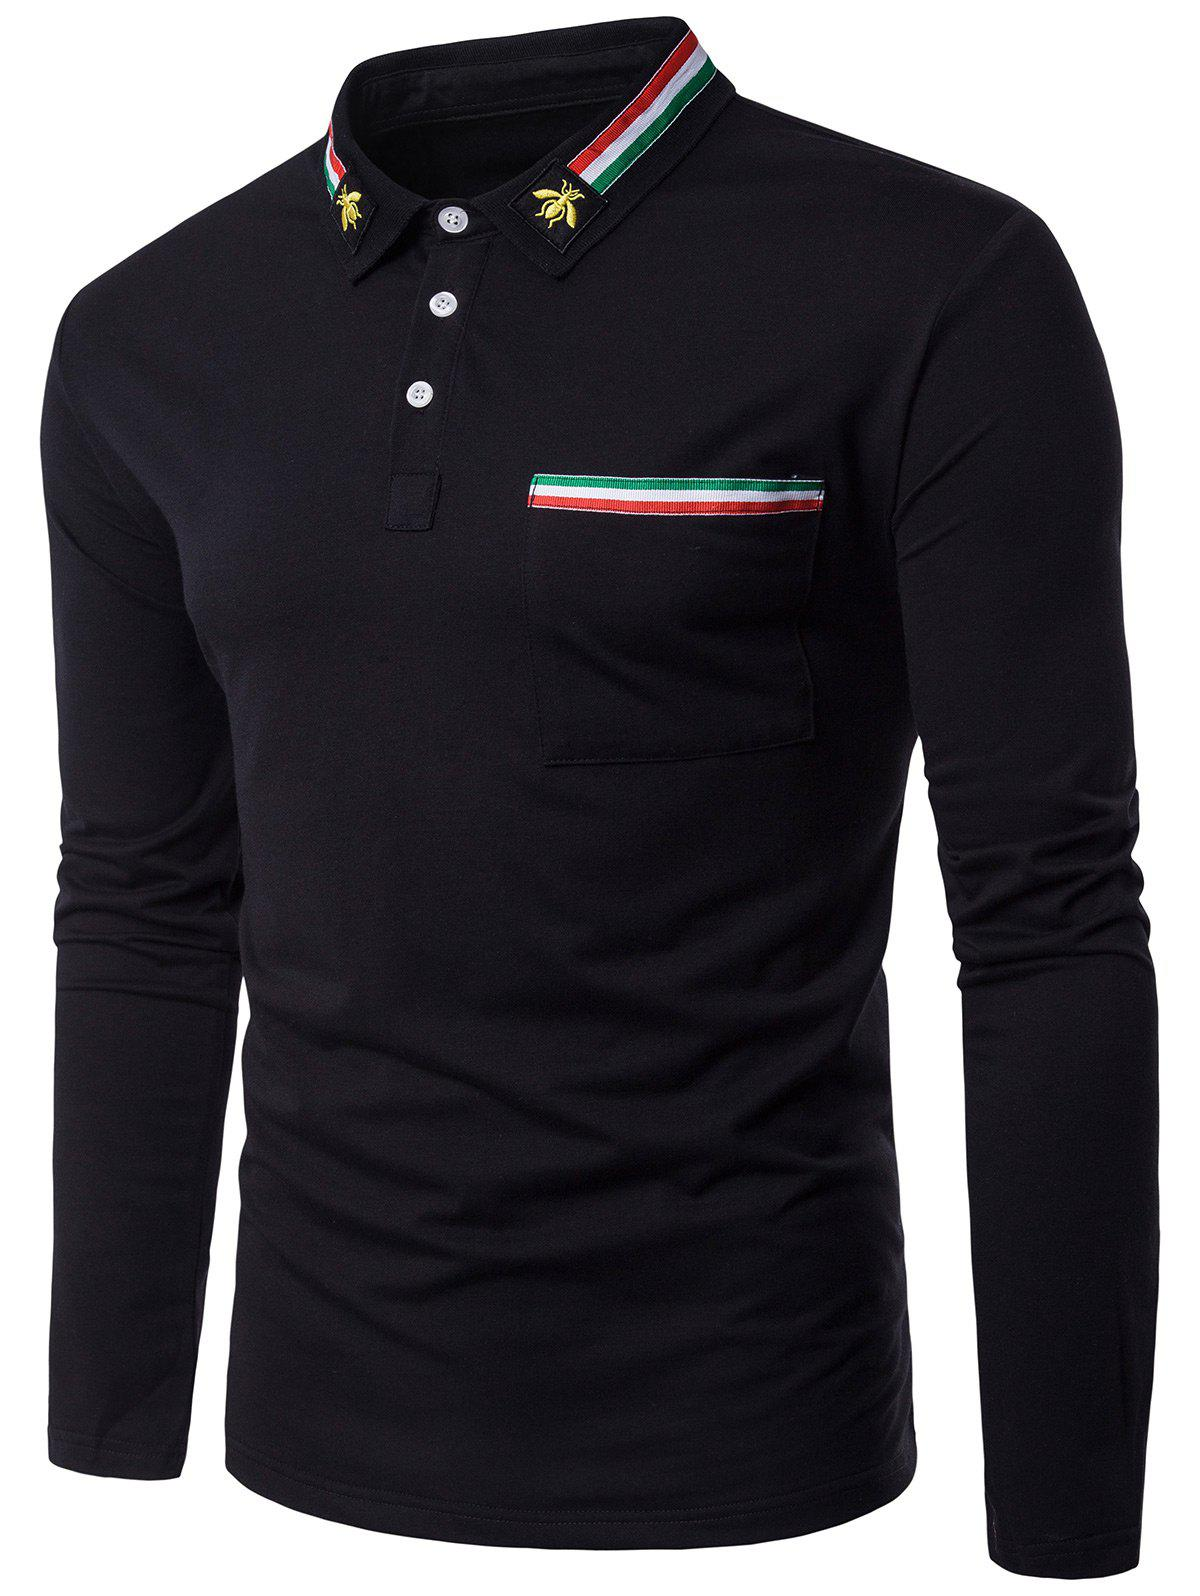 Bee Embroidered Stripe Braid Embellished Polo Collar T-shirtMEN<br><br>Size: M; Color: BLACK; Material: Cotton,Polyester; Sleeve Length: Full; Collar: Polo Collar; Style: Casual,Fashion; Embellishment: Embroidery; Pattern Type: Striped; Weight: 0.2200kg; Package Contents: 1 x T-shirt;